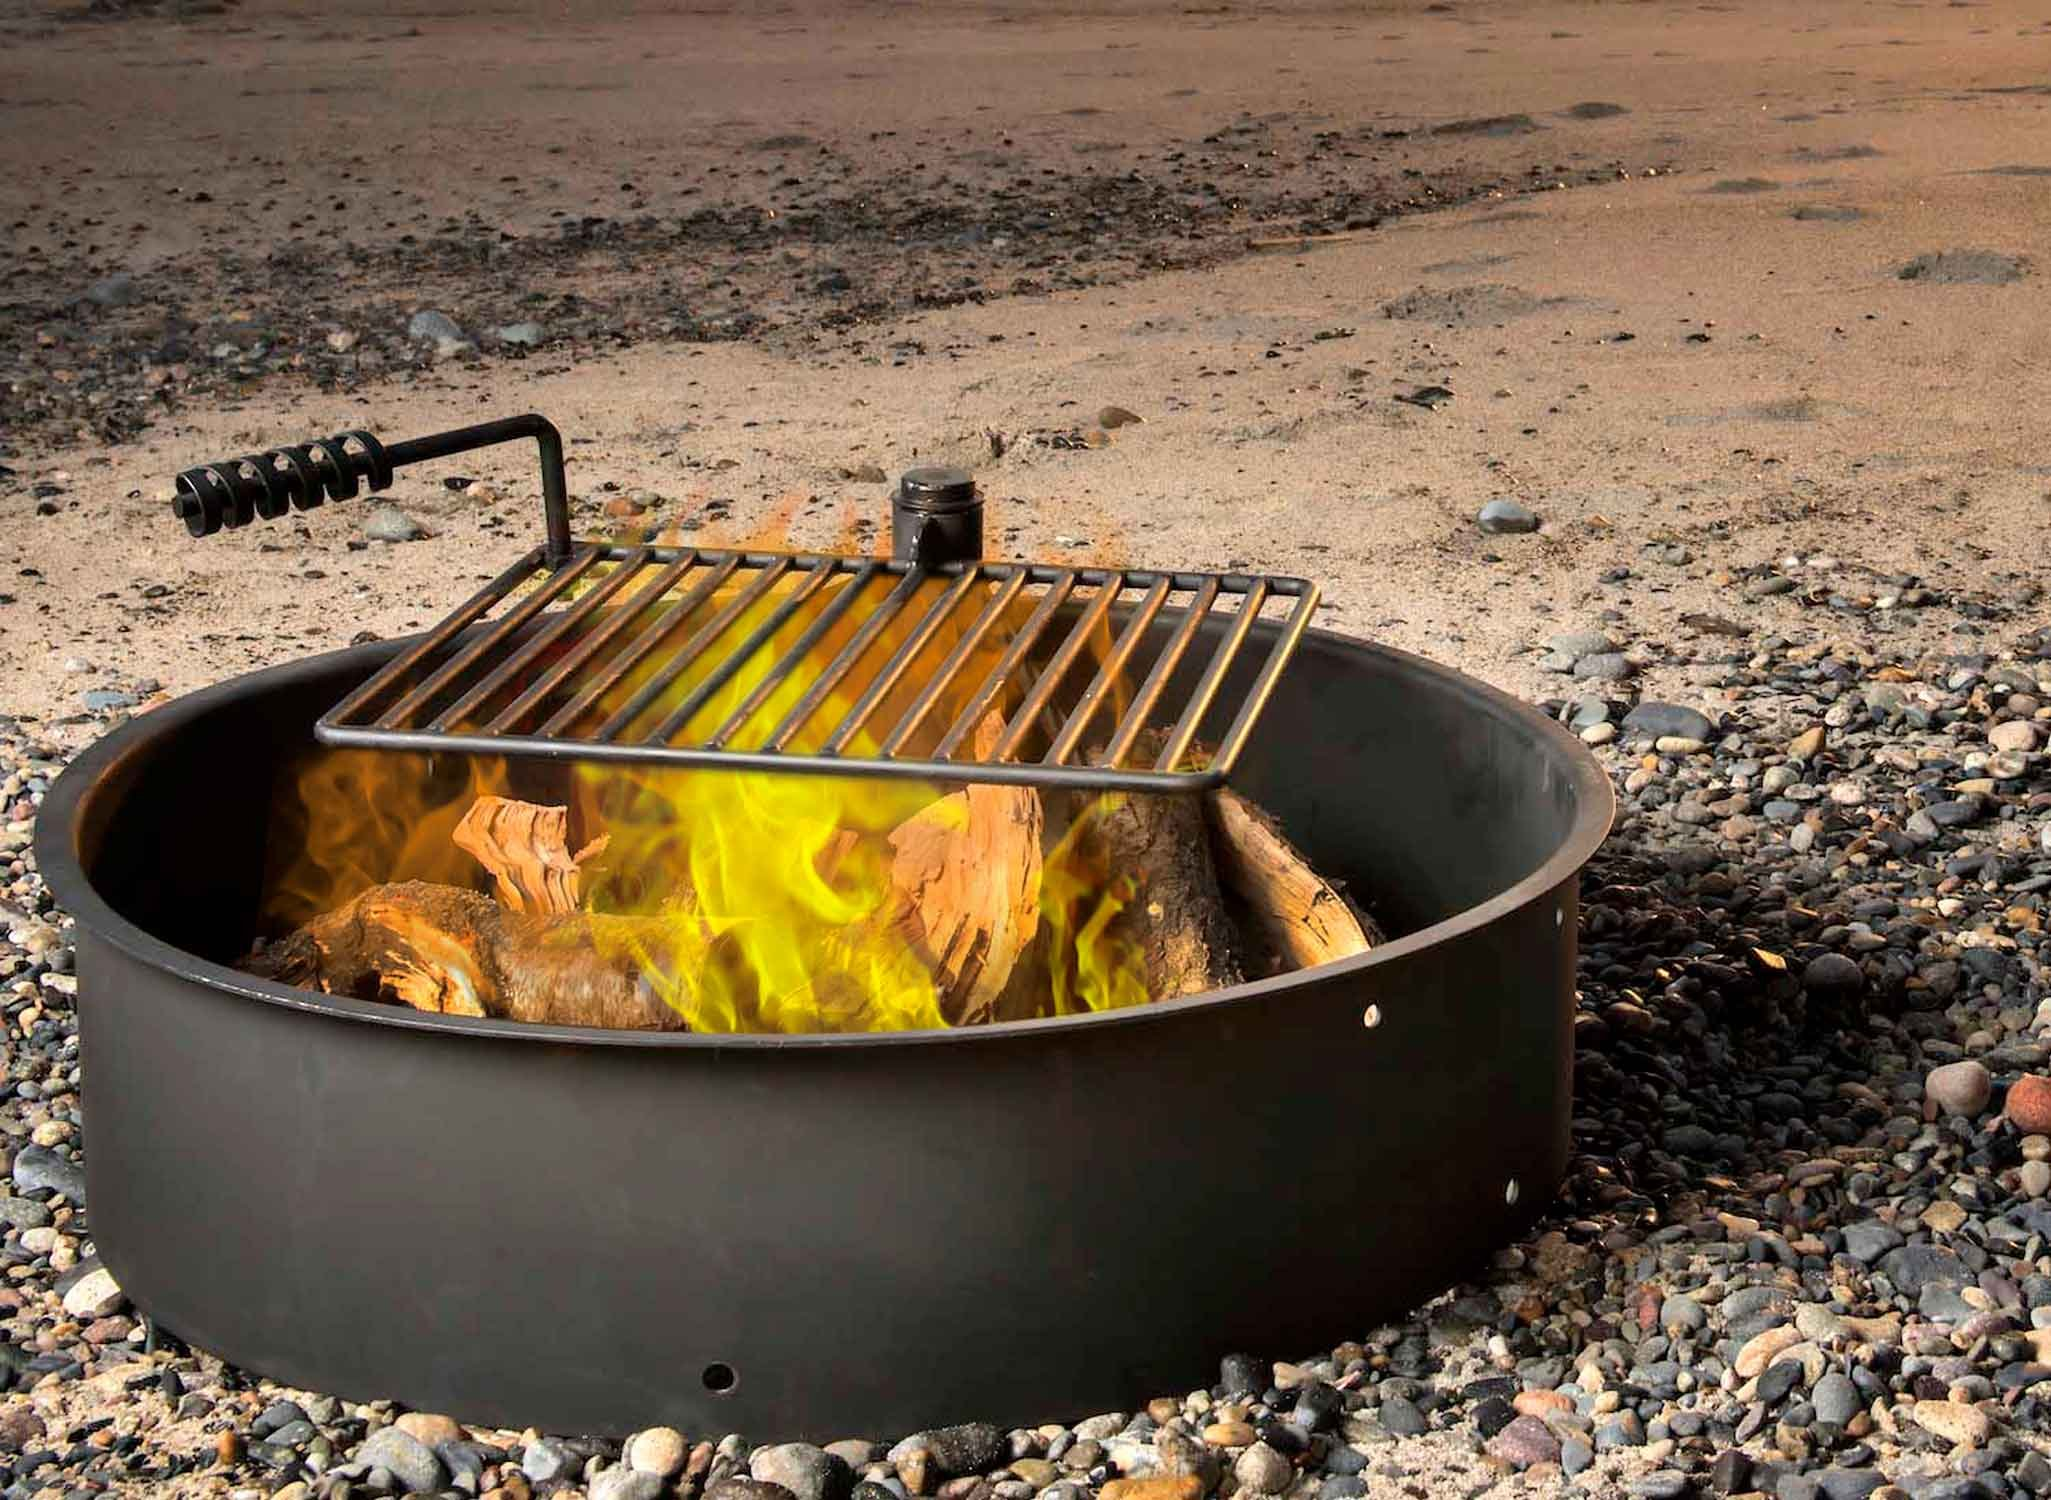 Titan Outdoors 36'' Steel Fire Ring Cooking Grate Campfire Pit Park Grill BBQ Camping Trail by Titan Great Outdoors